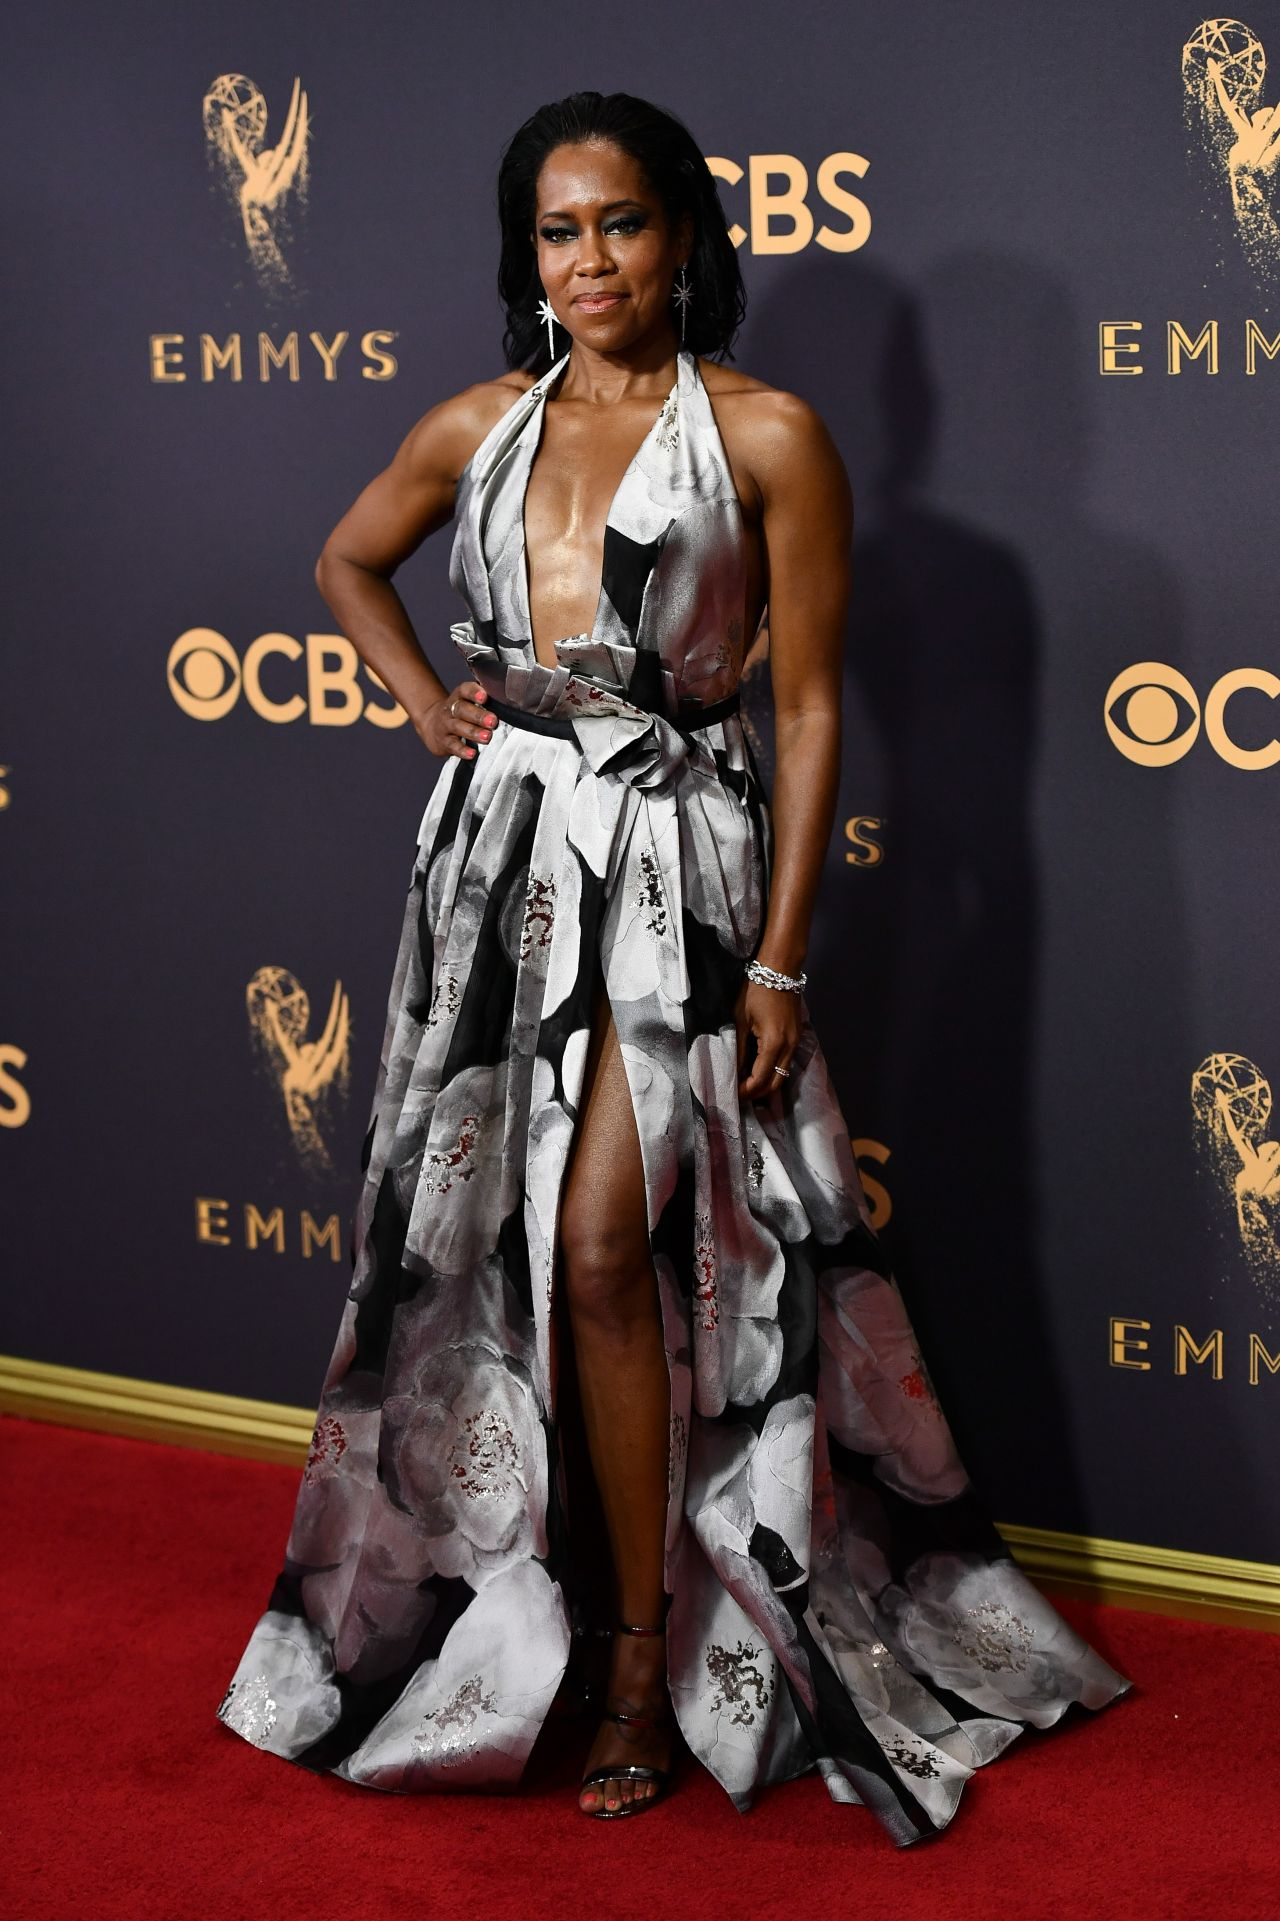 Regina King Emmy Awards In Los Angeles 09 17 2017